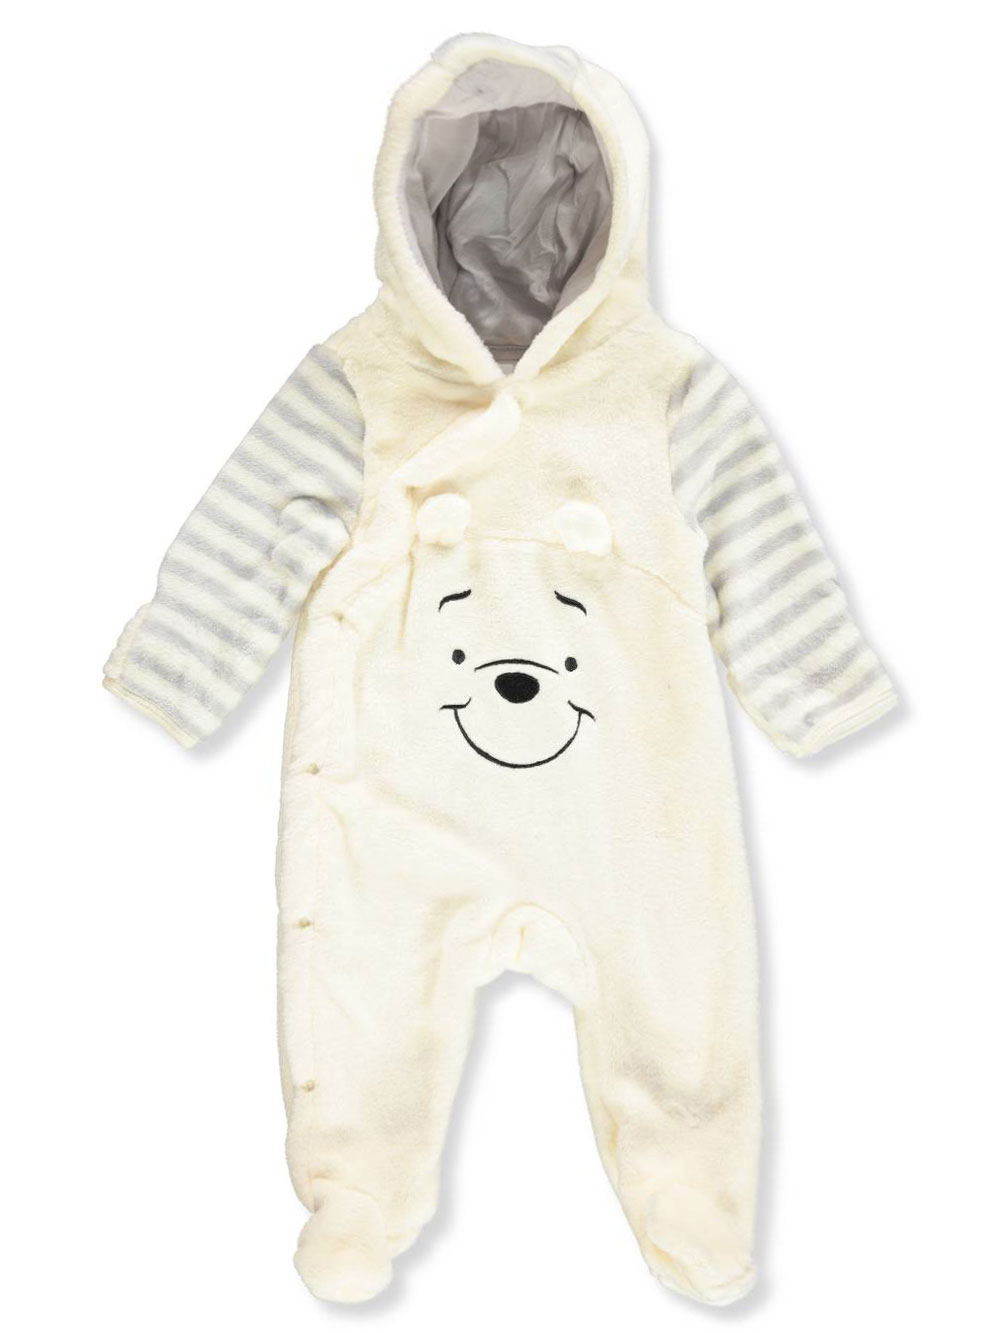 5c2015dbc Details about Disney Baby Boys' Hooded Pram Suit Featuring Winnie the Pooh